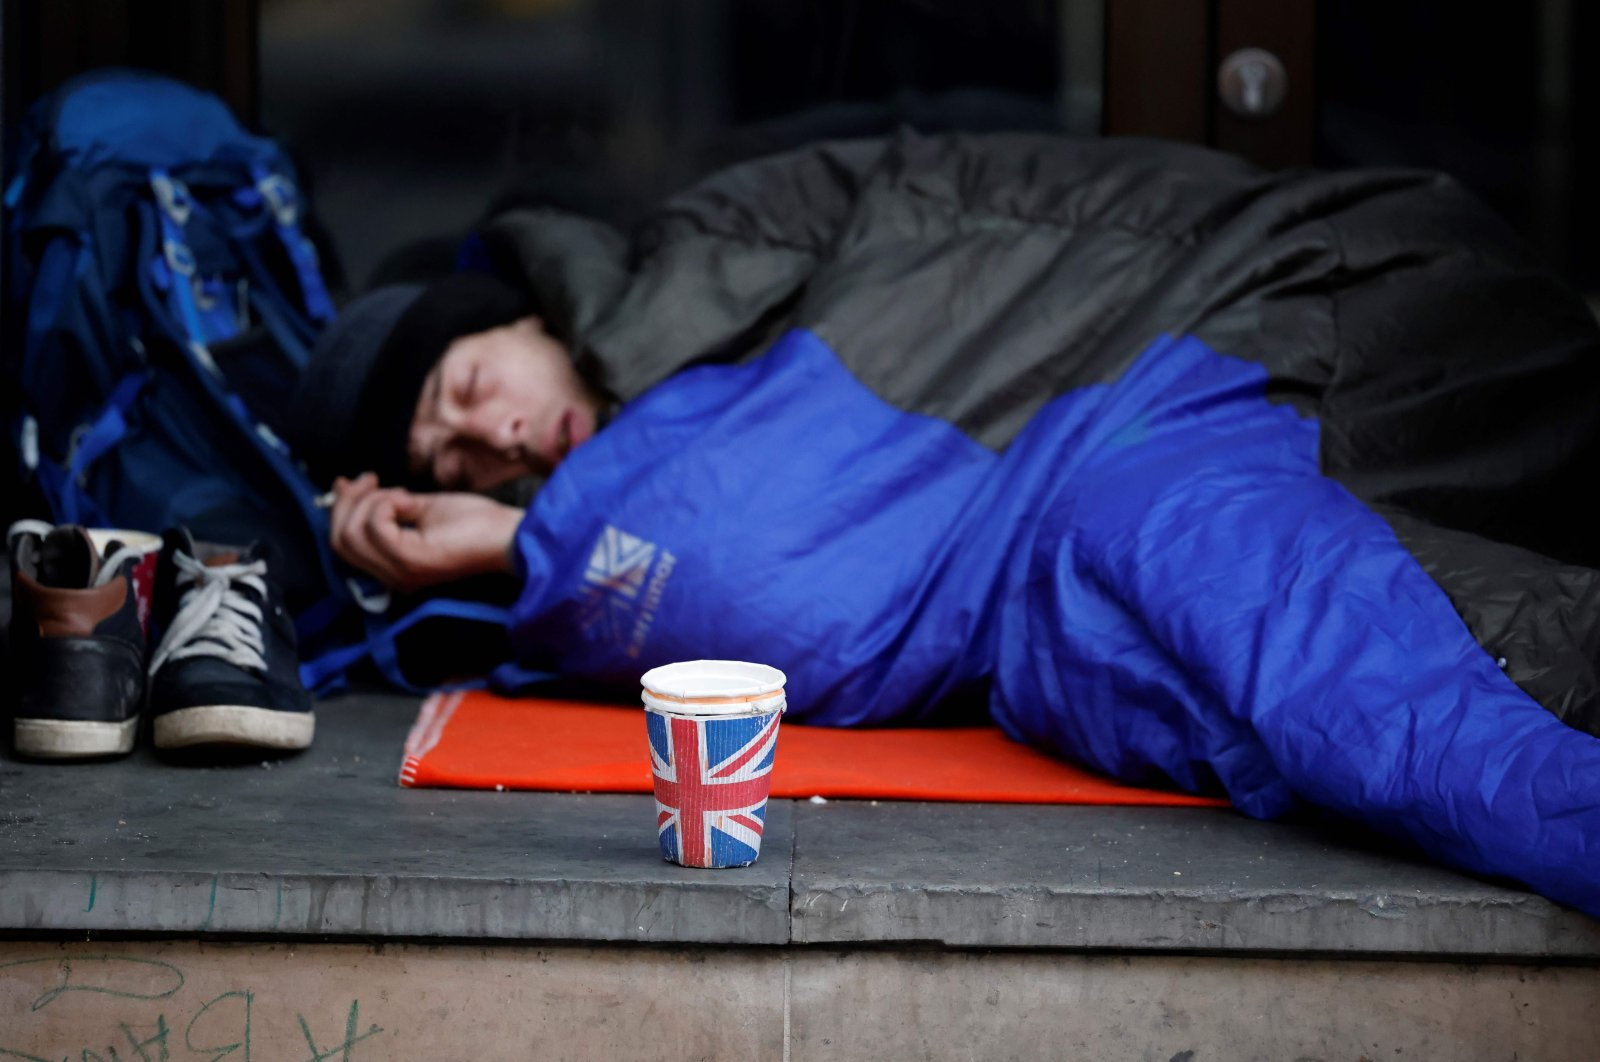 A homeless person lays in a sleeping bag on a pavement near Piccadilly Circus in central London on Nov. 25, 2020. (AFP Photo)